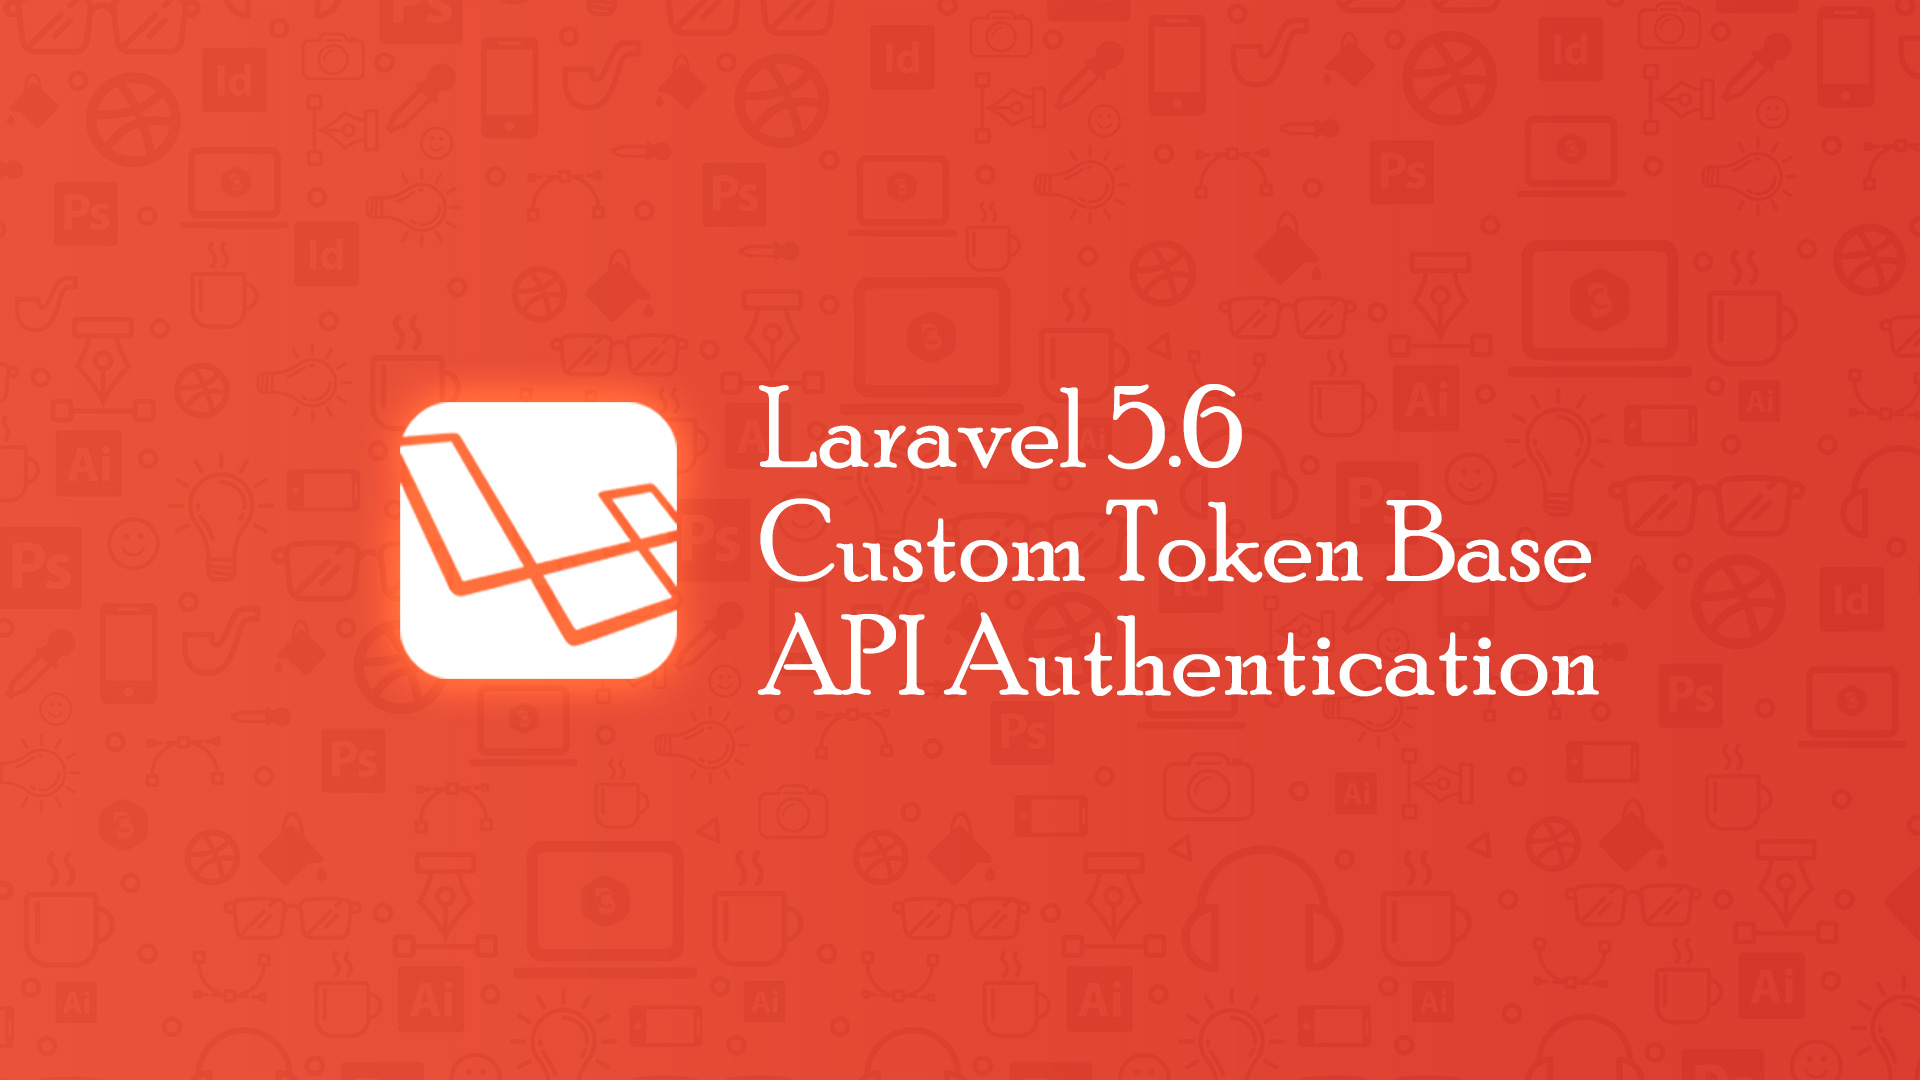 Laravel 5 6 Custom Token Base API Authentication - Code Briefly